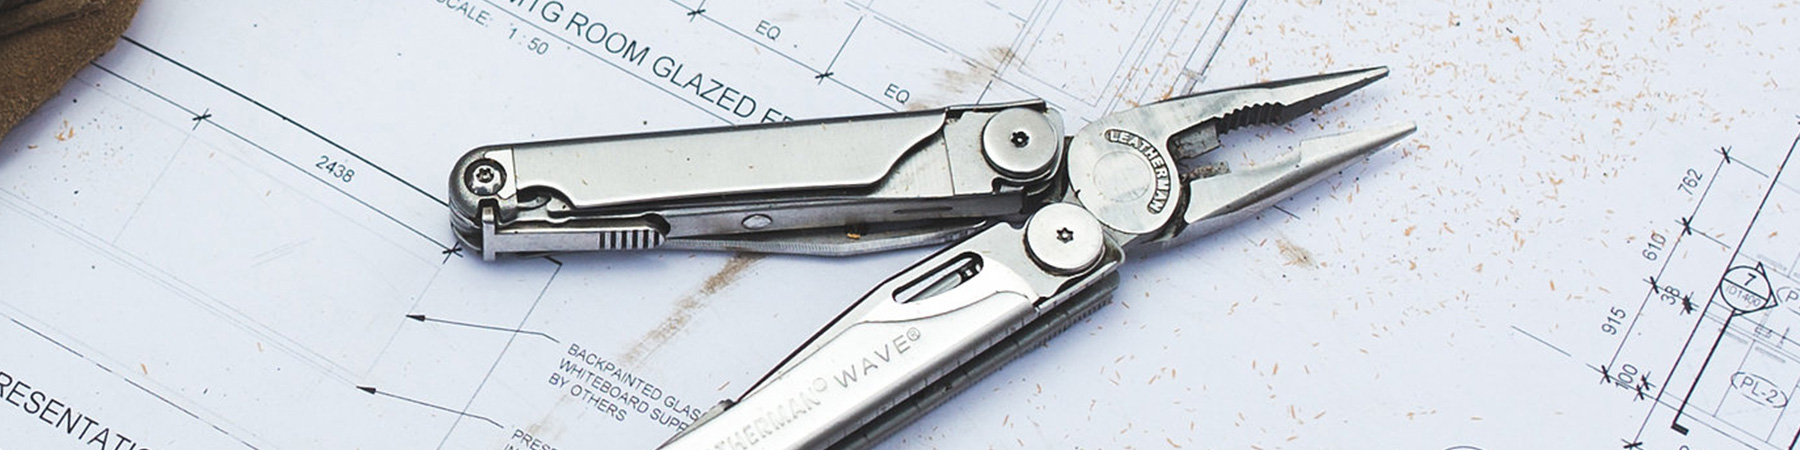 Leatherman Category image - Класически